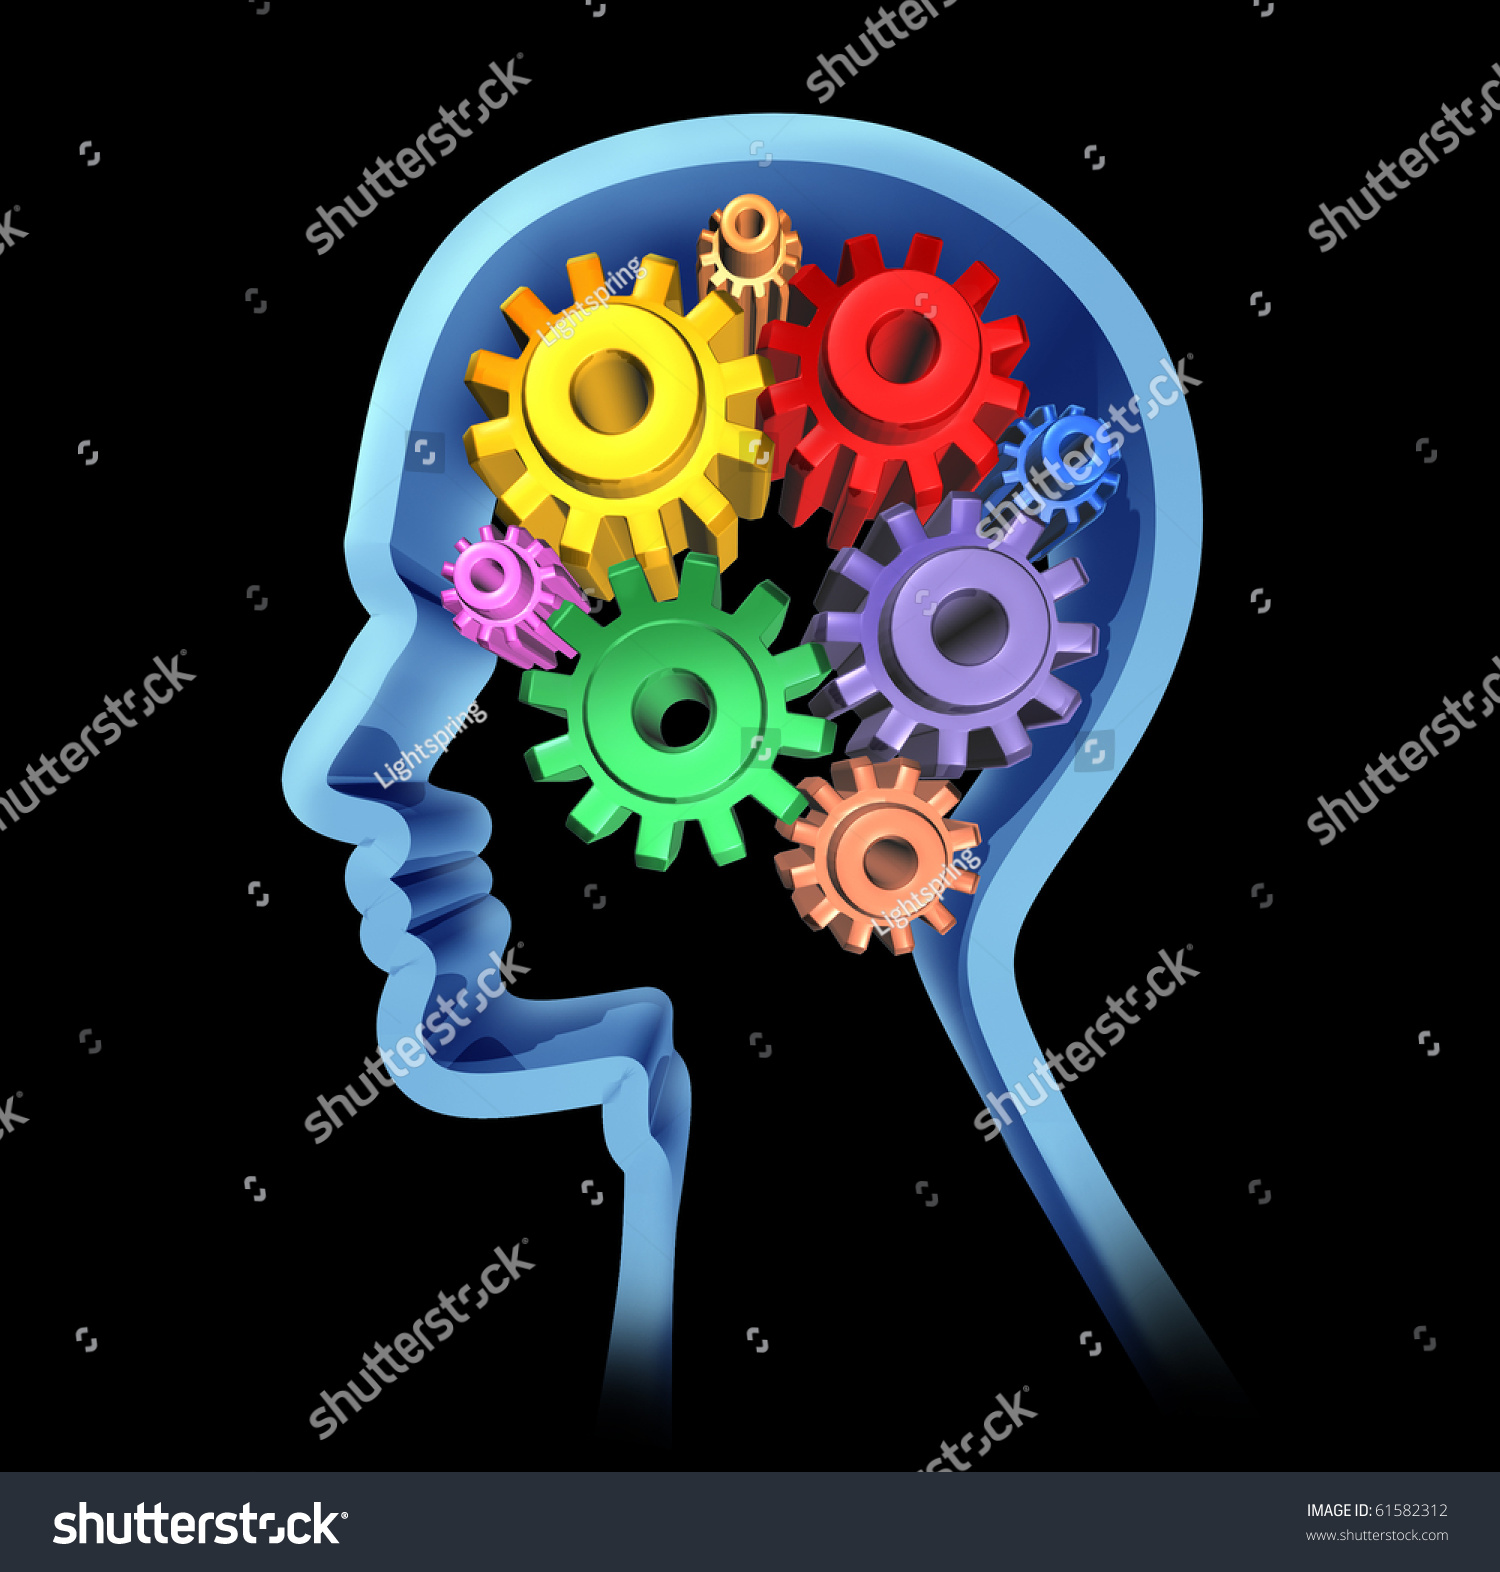 explain the role in the brain and cognitive functions The memory plays a role in all our activities it helps us remember all kinds of knowledge (semantic memory) the memory is therefore one of the most essential cognitive functions in a person's life that paris is the capital of france the type of information to be memorized or recalled engages the brain in different ways.